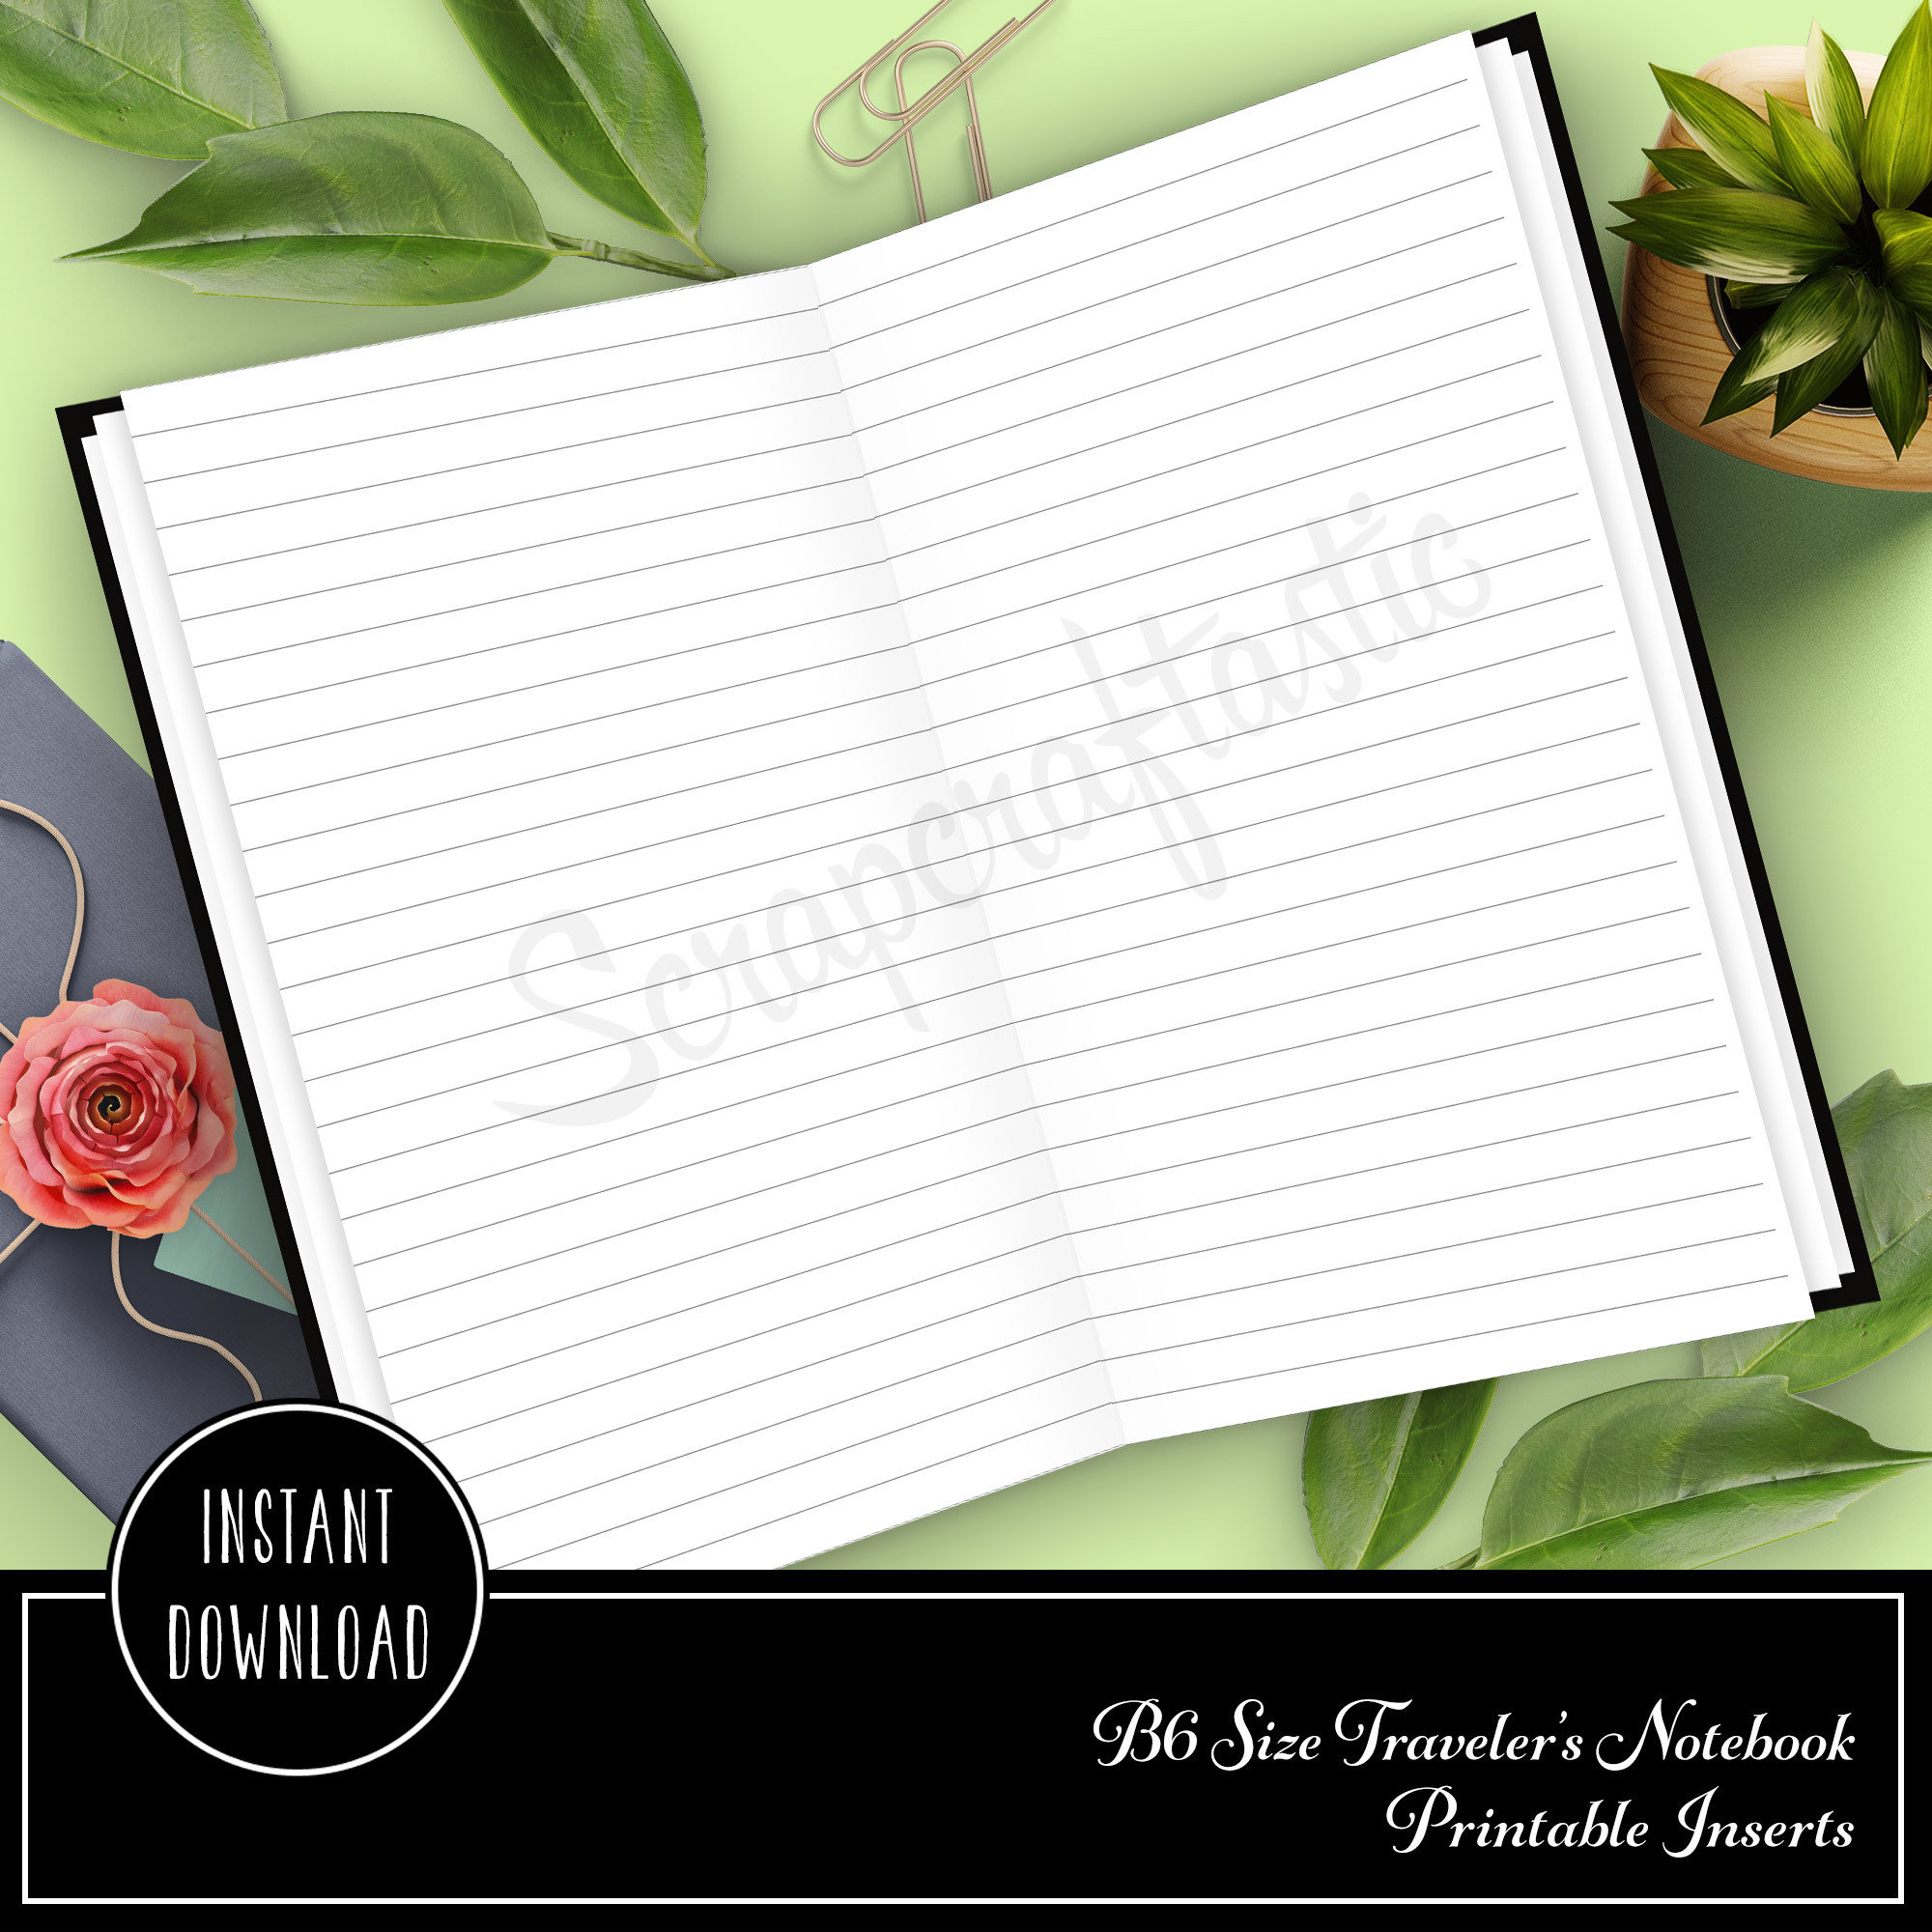 Lined B6 Traveler's Notebook Printable Inserts 50003